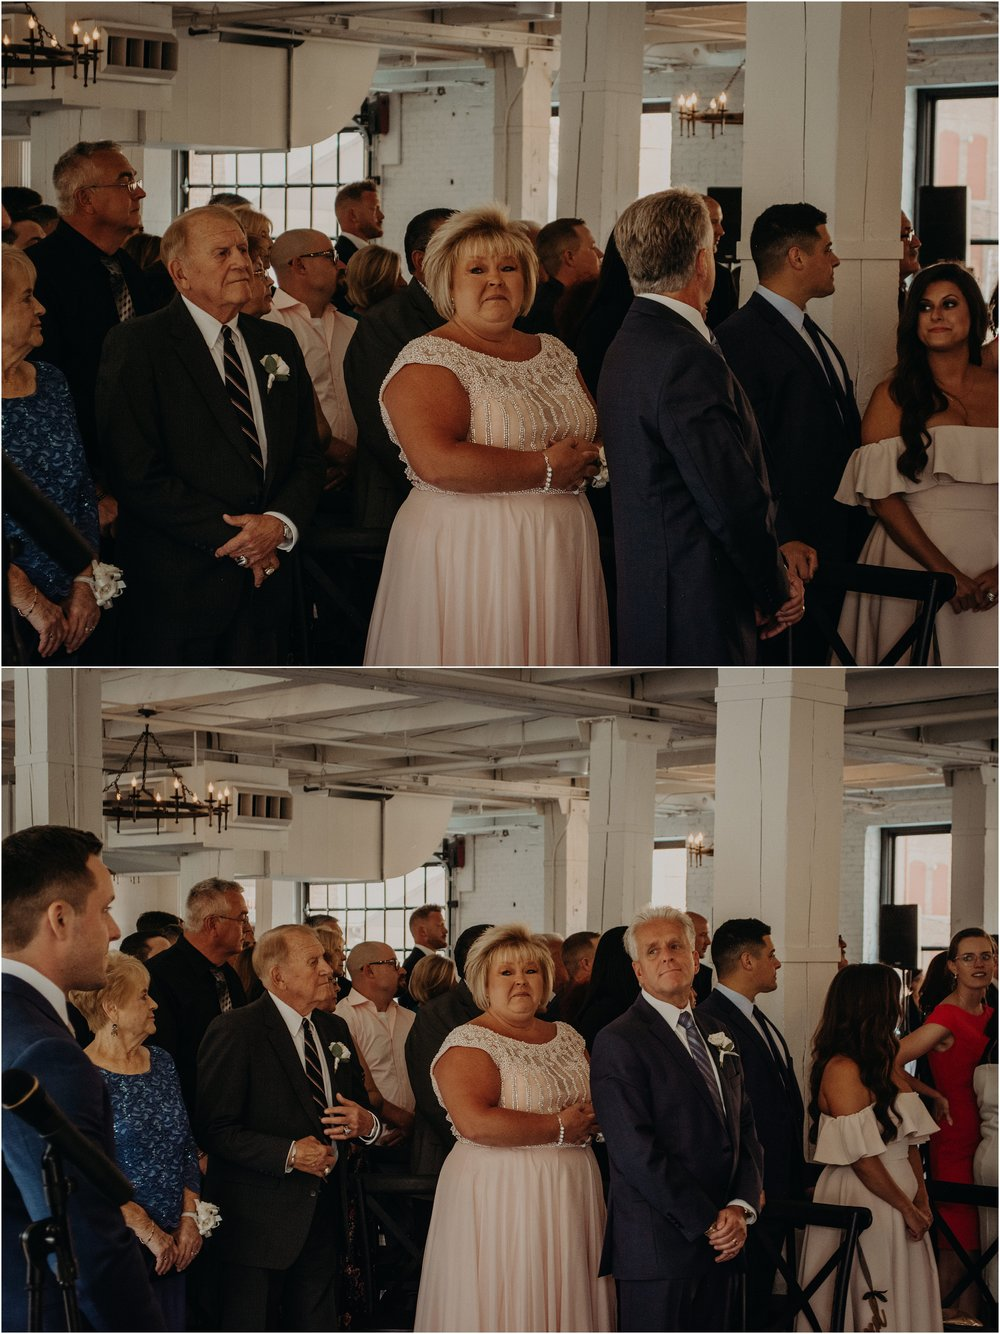 While everyone watches the bride, the mother and father of the groom watch him.